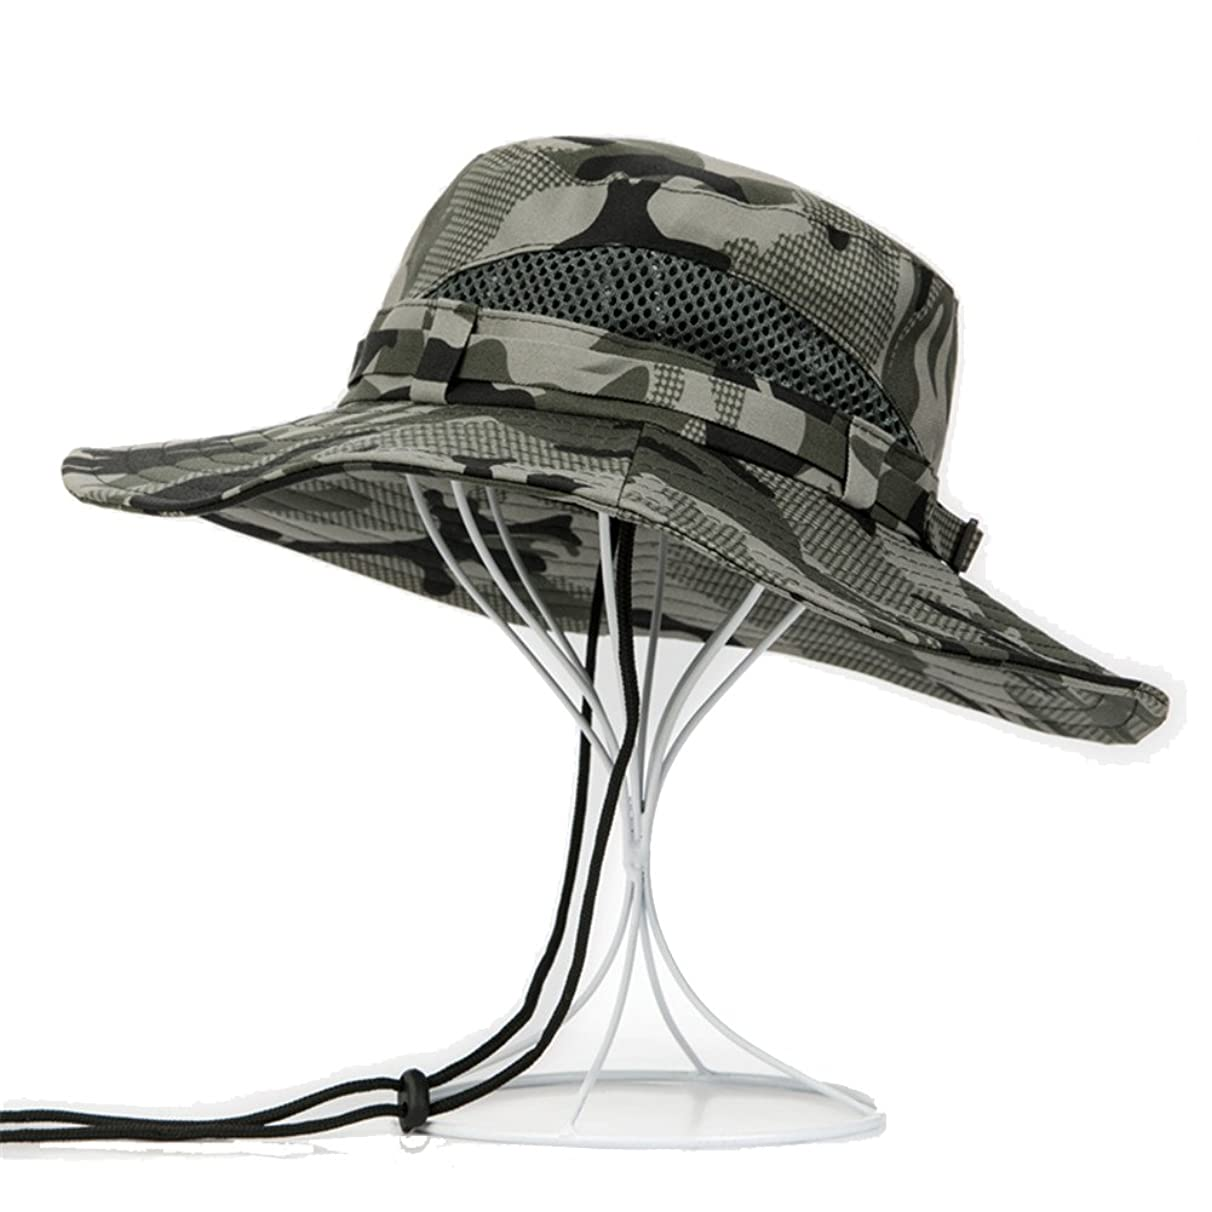 Leories Outdoor Hat UV Protecting Camping Hat Sun Hat Fishing Cap Wide Brim Bucket Hat with String